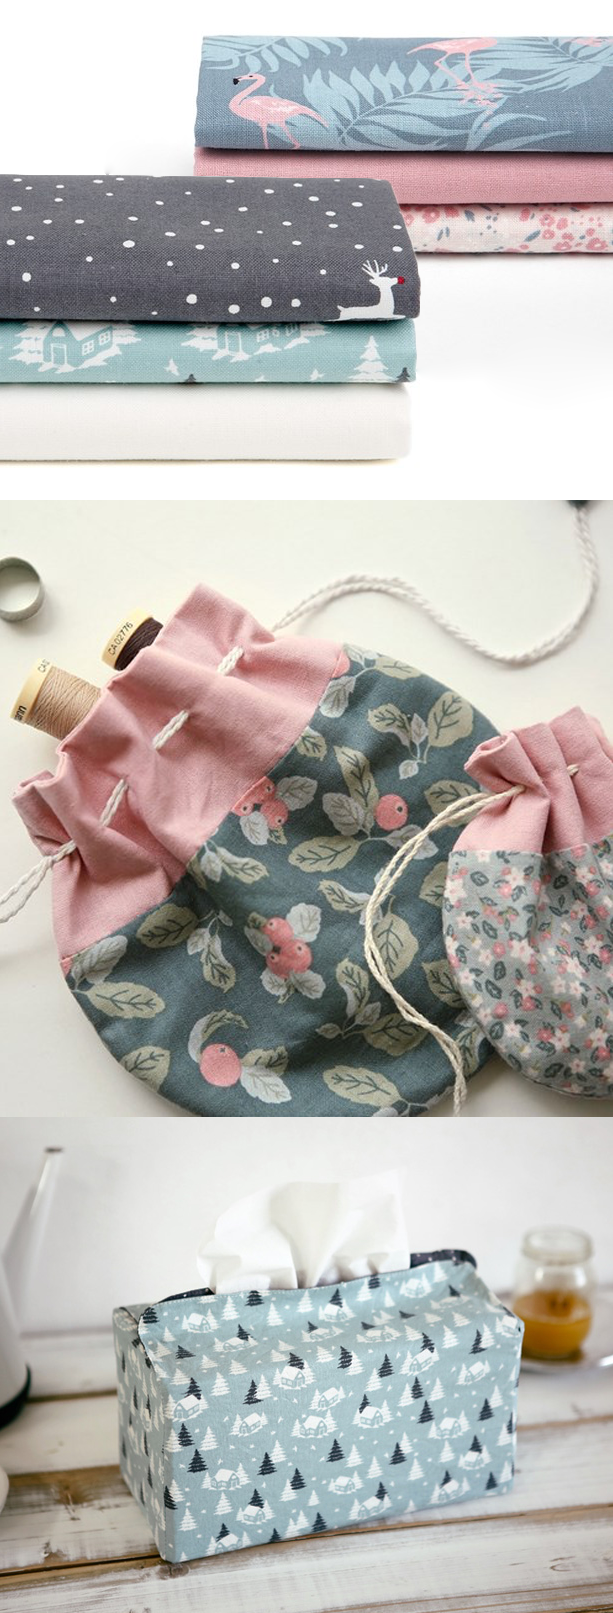 Create your own unique accessories and home decor with this cotton fabric set!